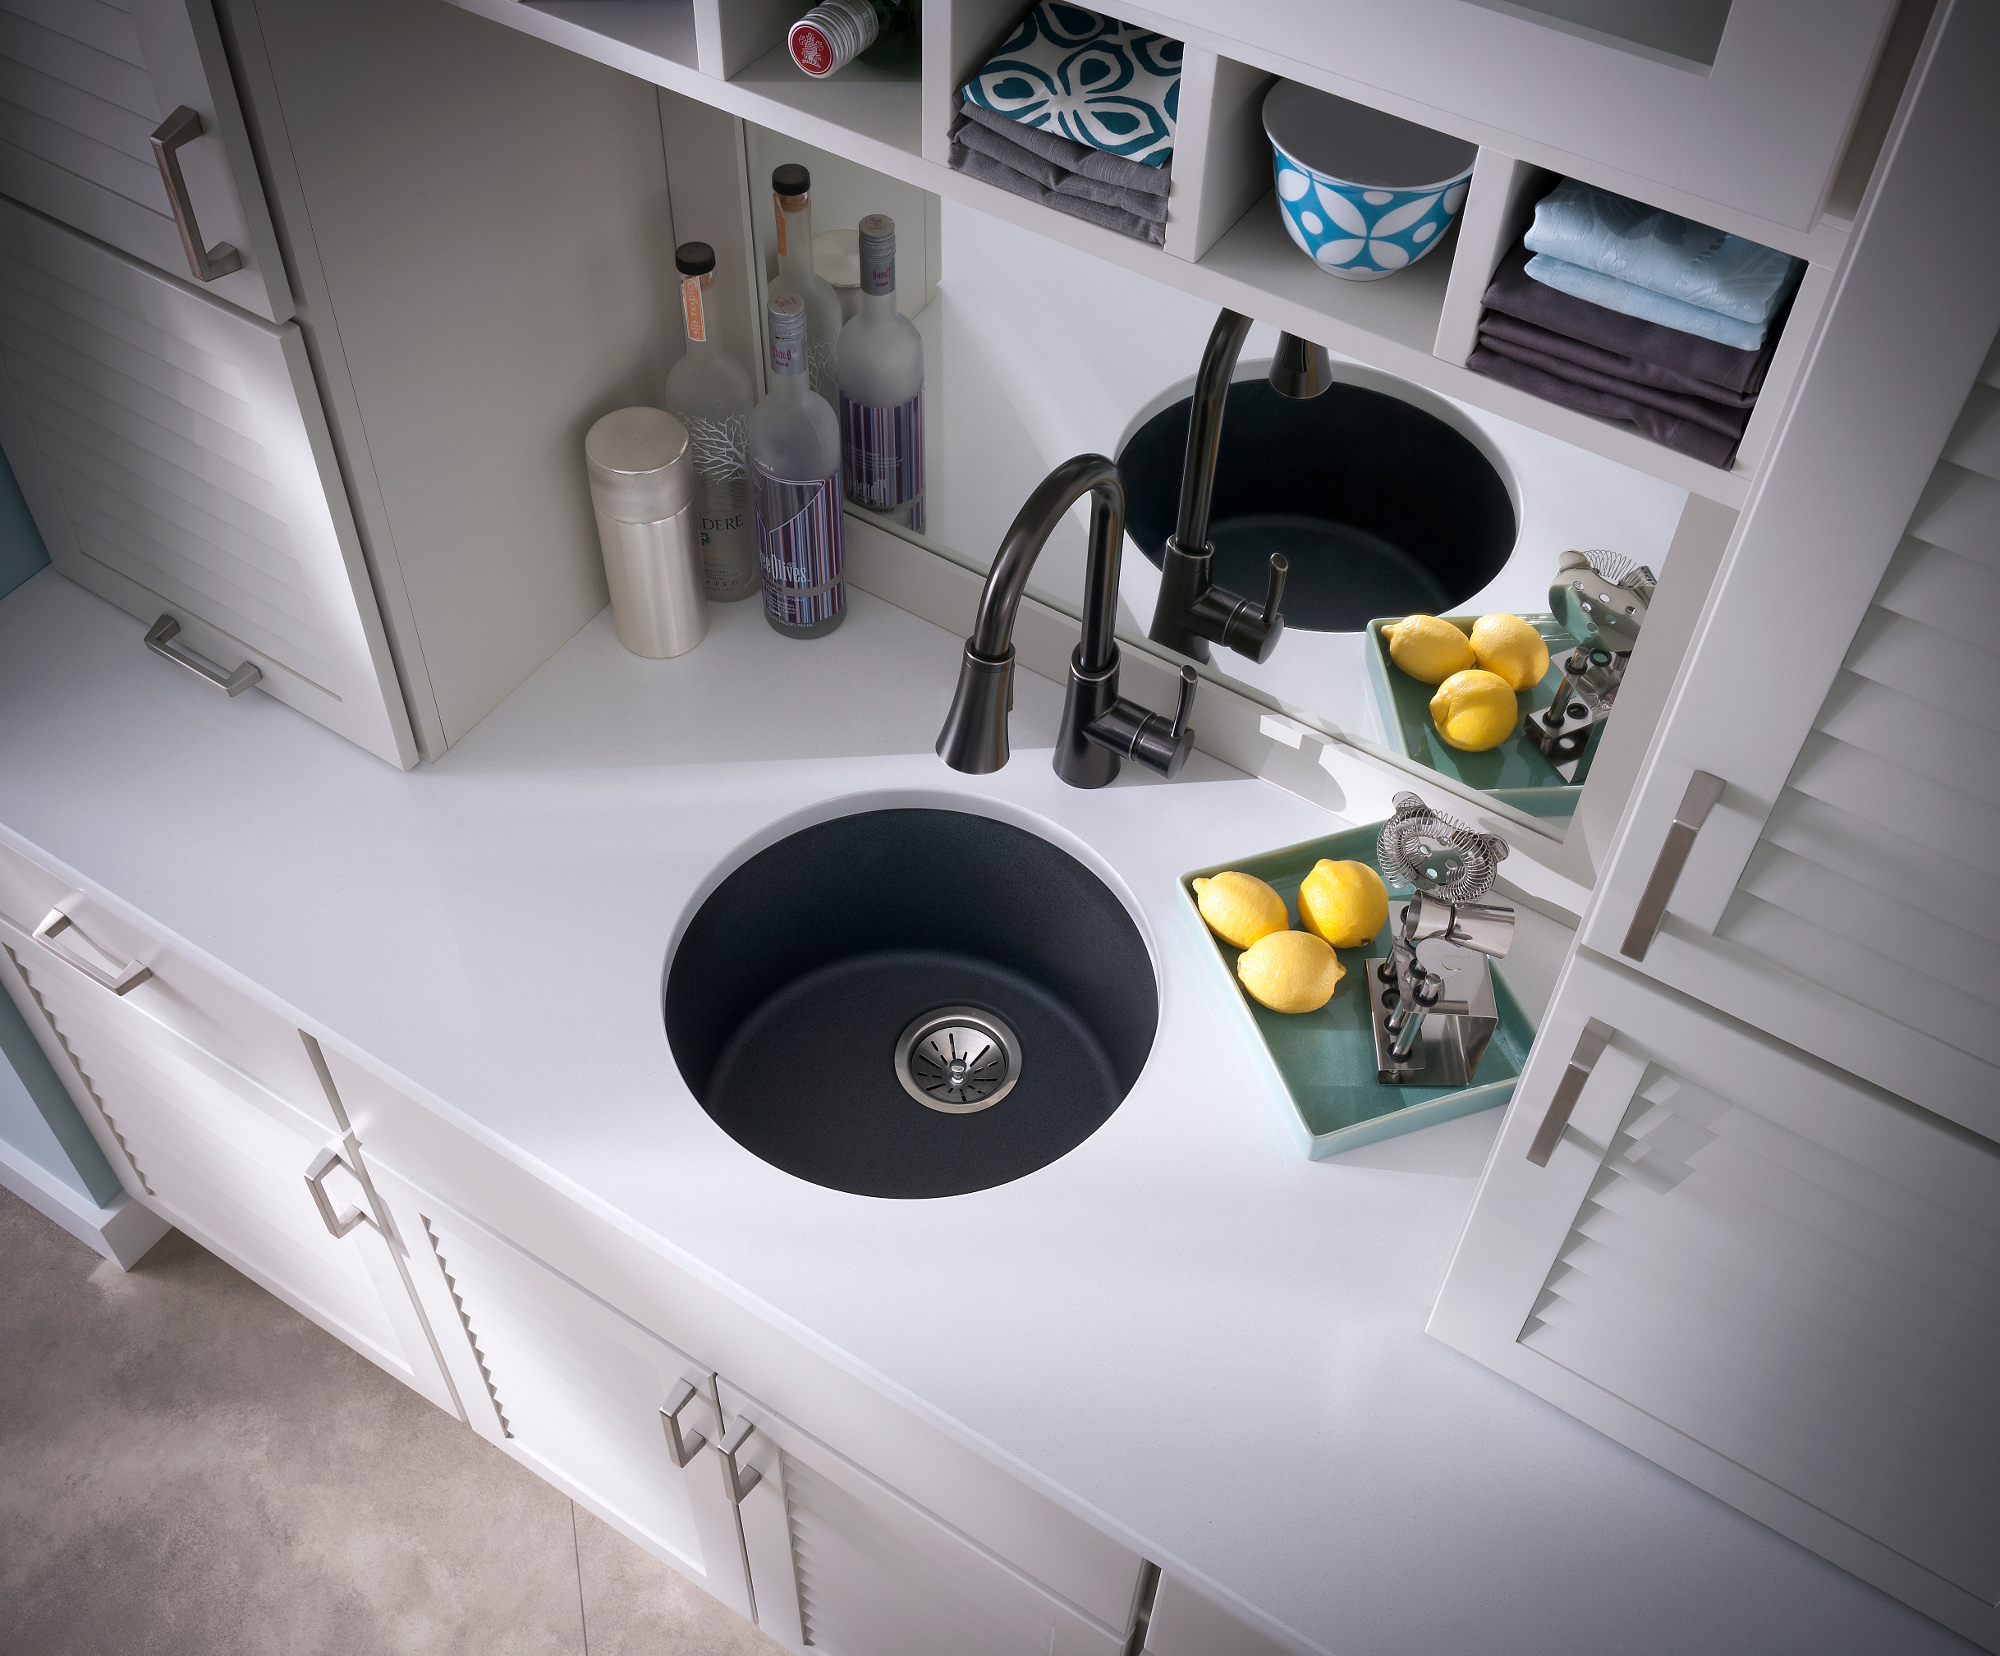 Elkay Quartz Classic 18-1/8in x 18-1/8in x 7-1/2in Single Bowl Dual Mount Bar Sink Dusk Gray